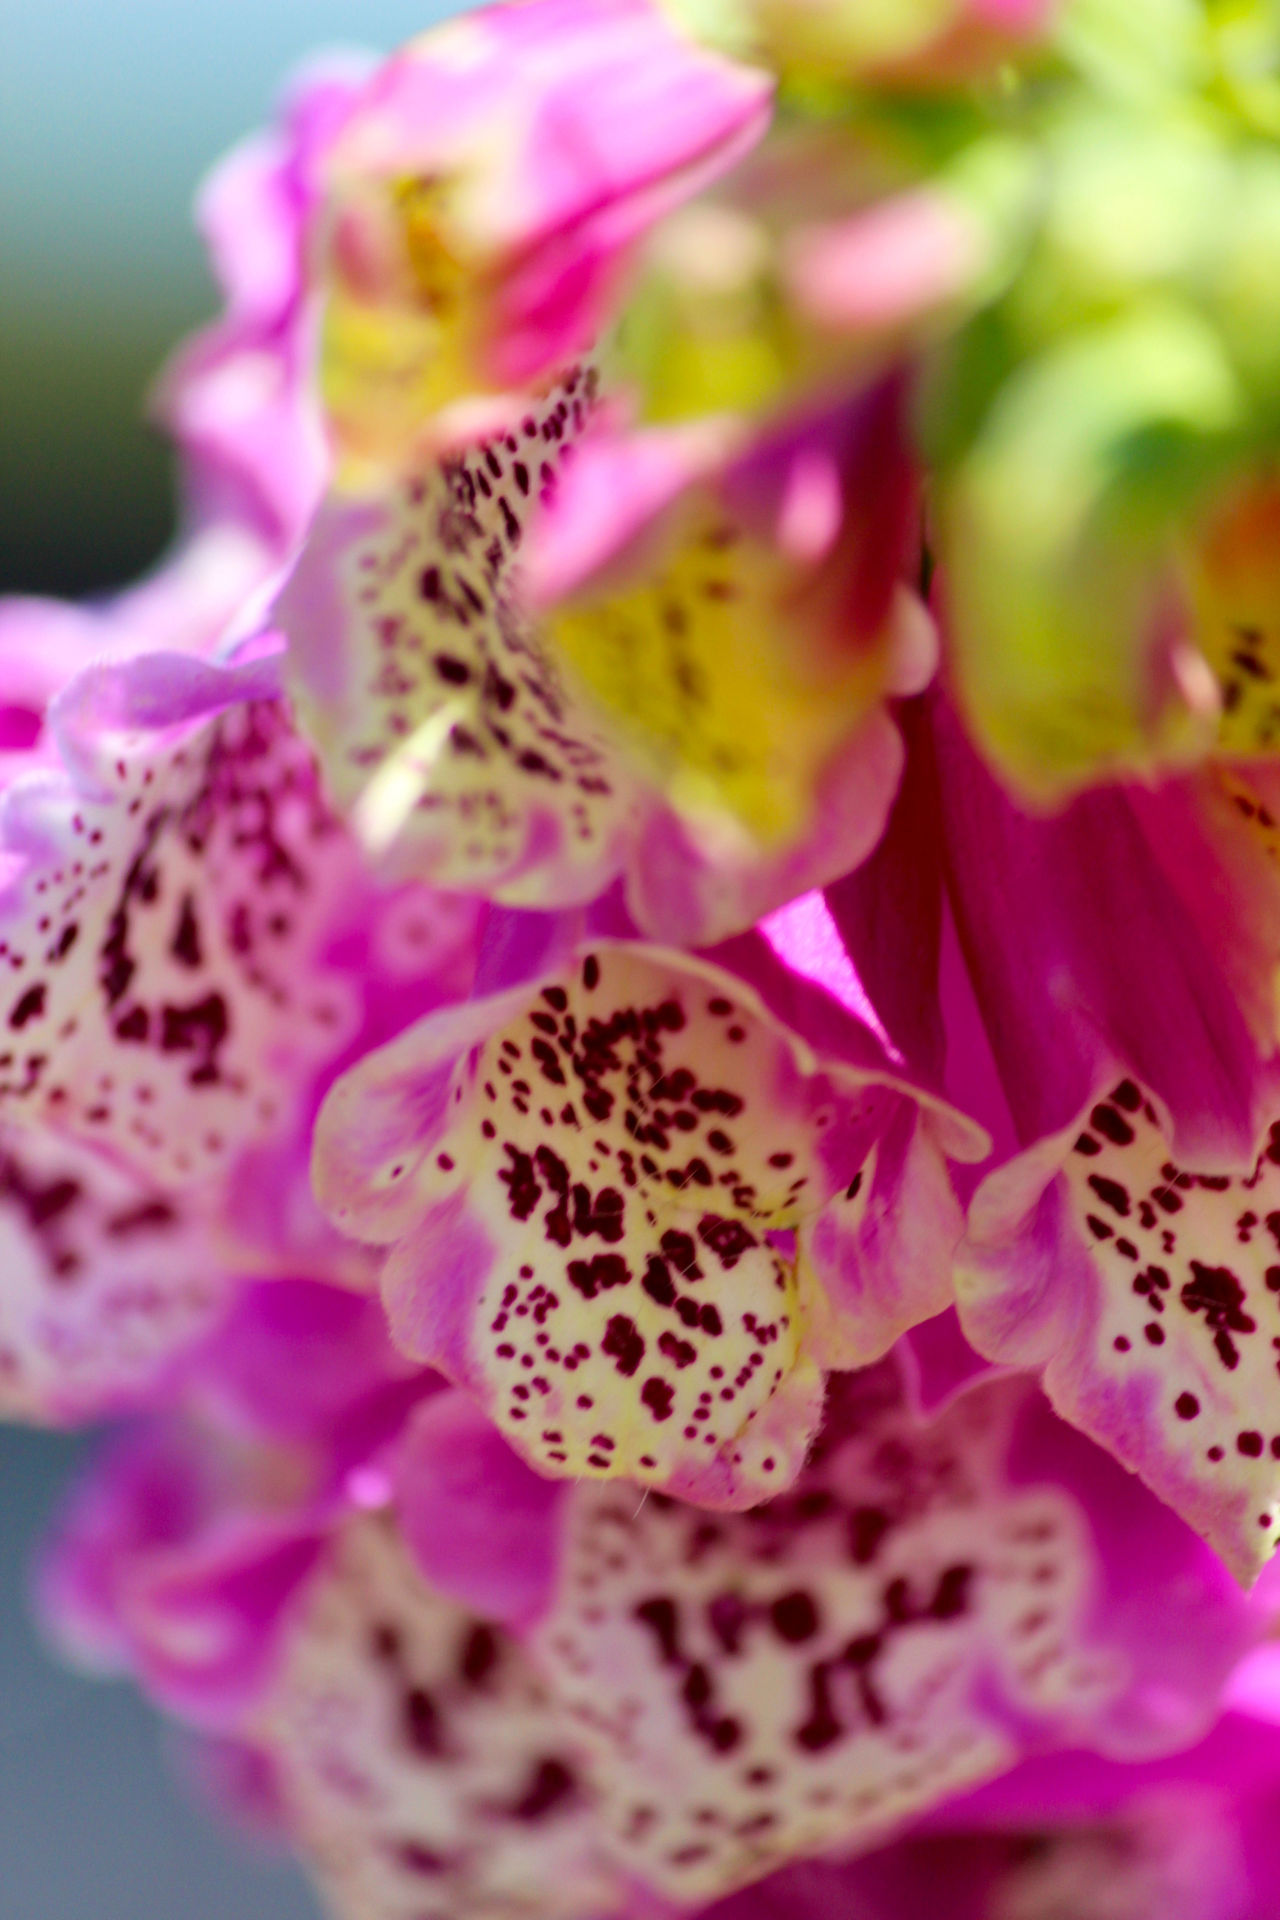 Beauty In Nature Botany Close-up Flower Flower Head Foxglove Fragility Freshness Growth Nature Petal Pink Color Plant Selective Focus